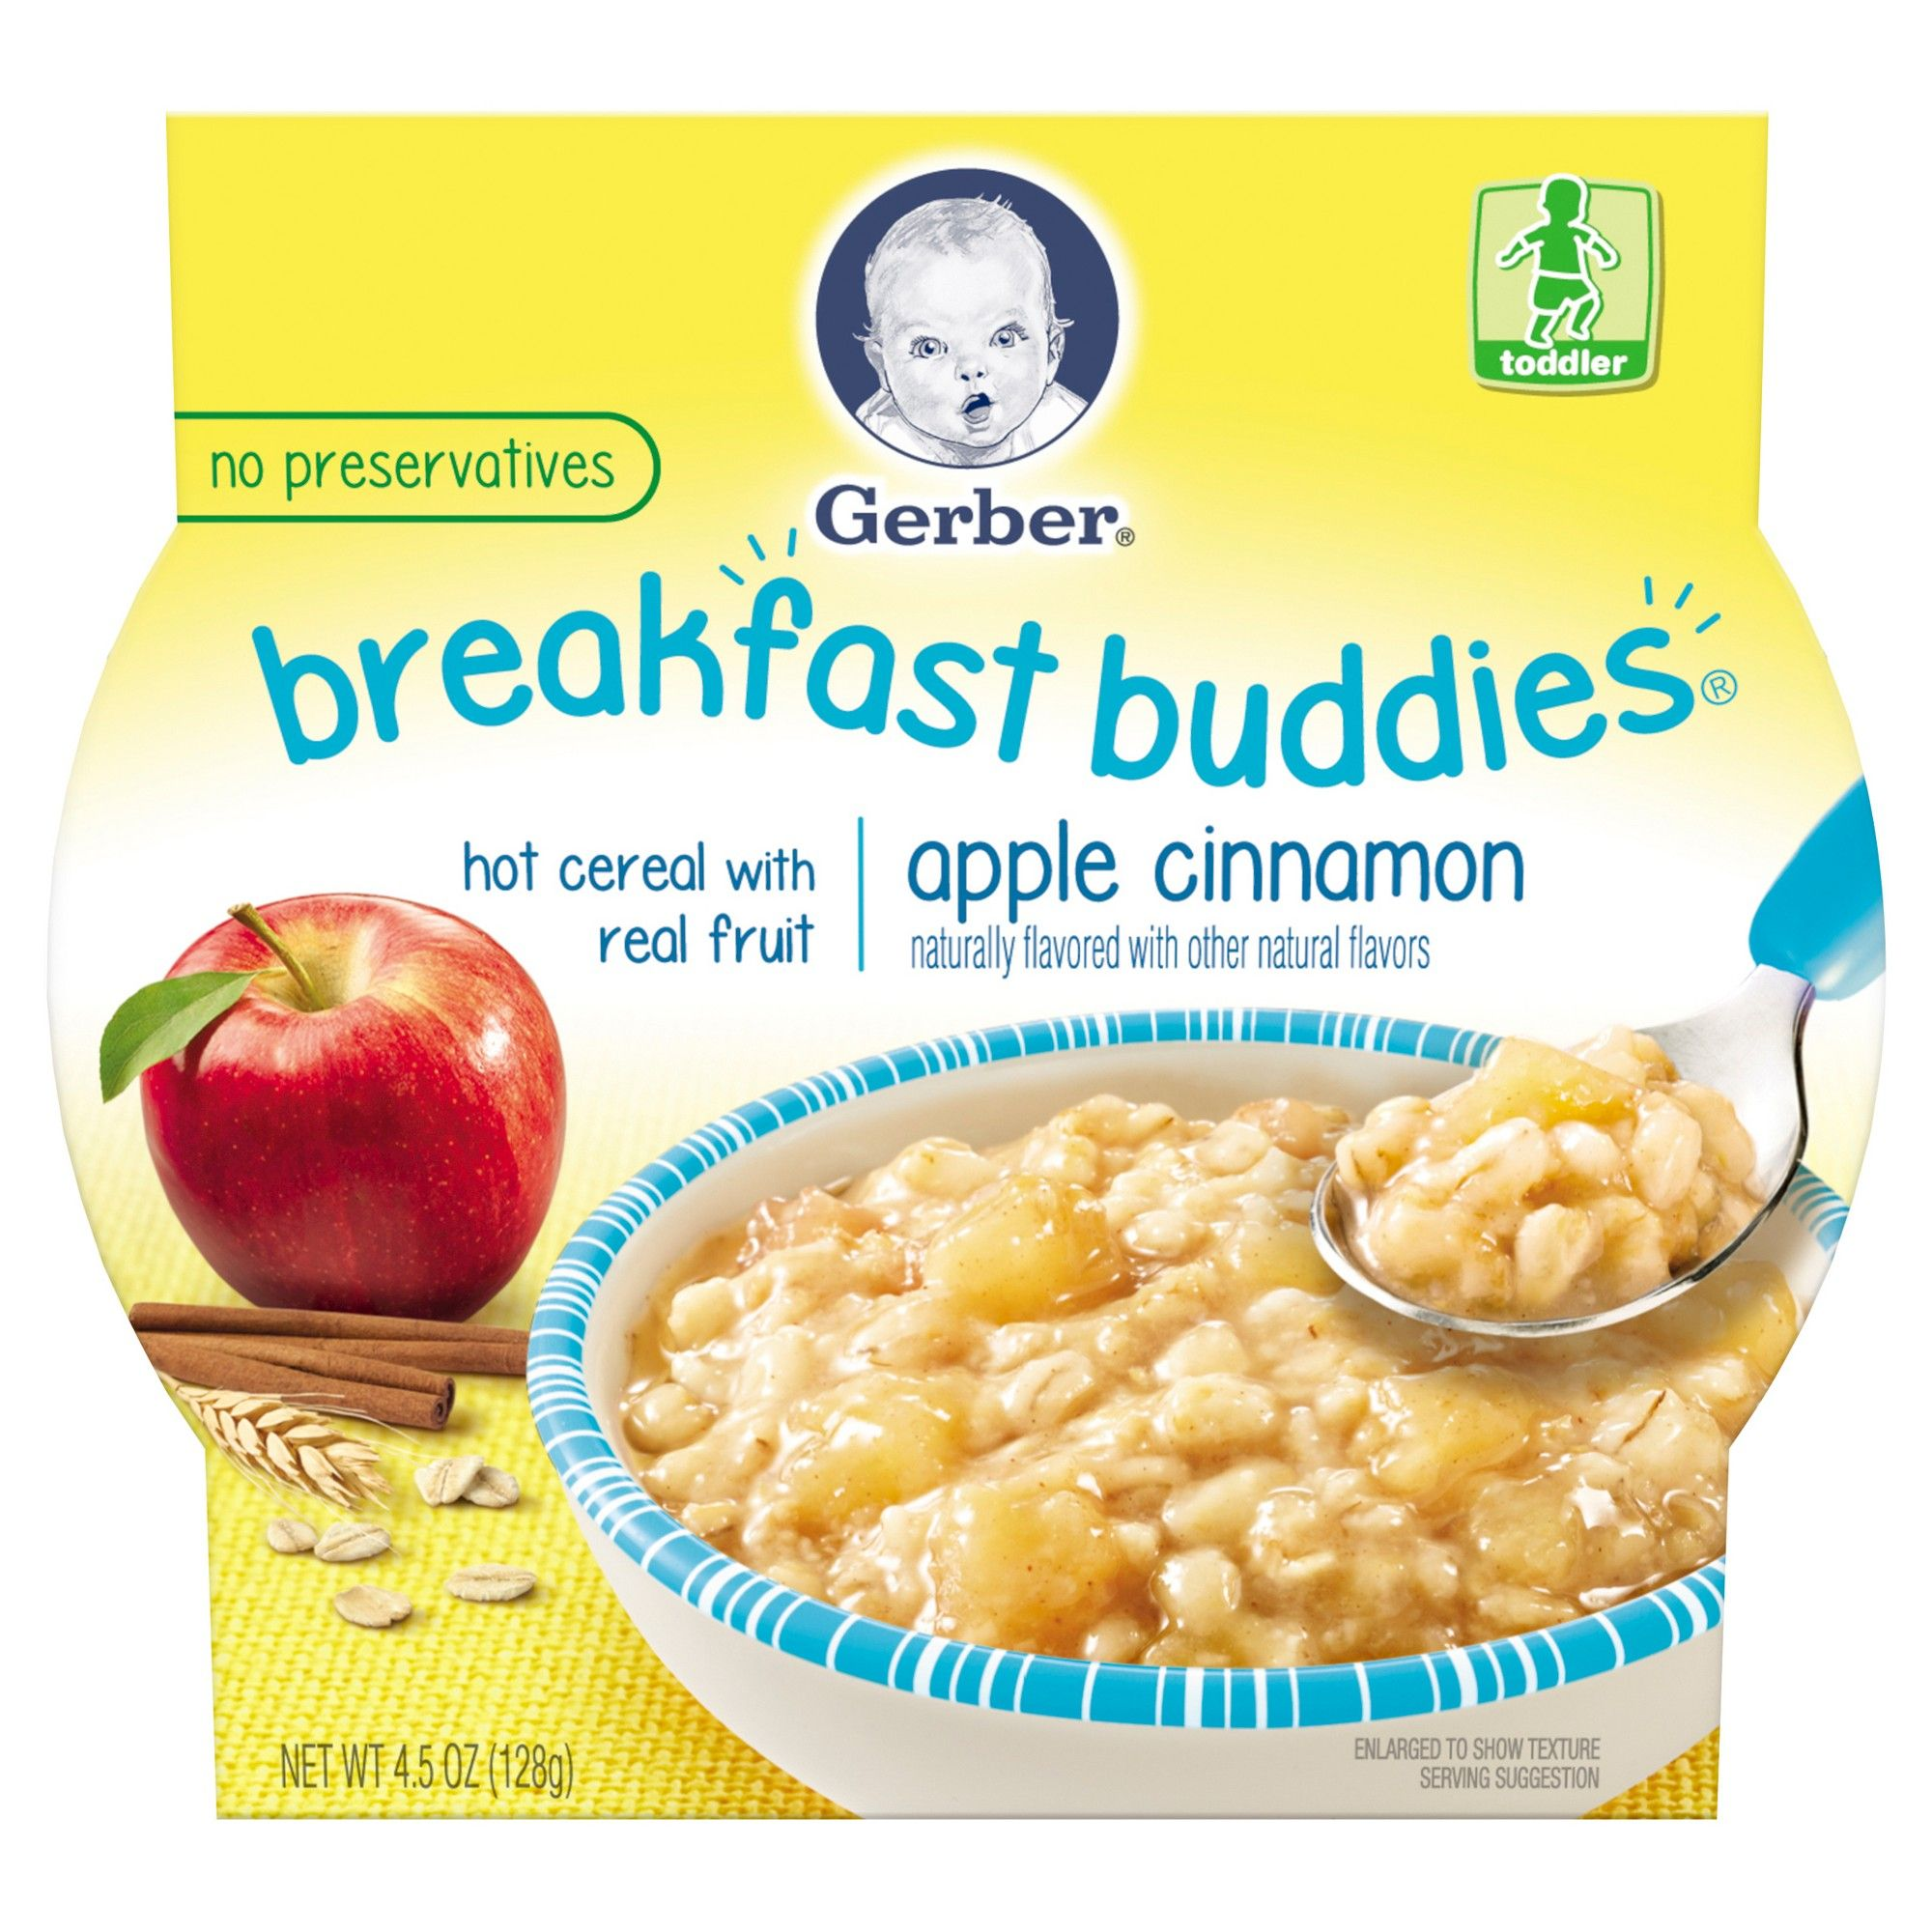 Gerber breakfast buddies hot cereal with real fruit apple